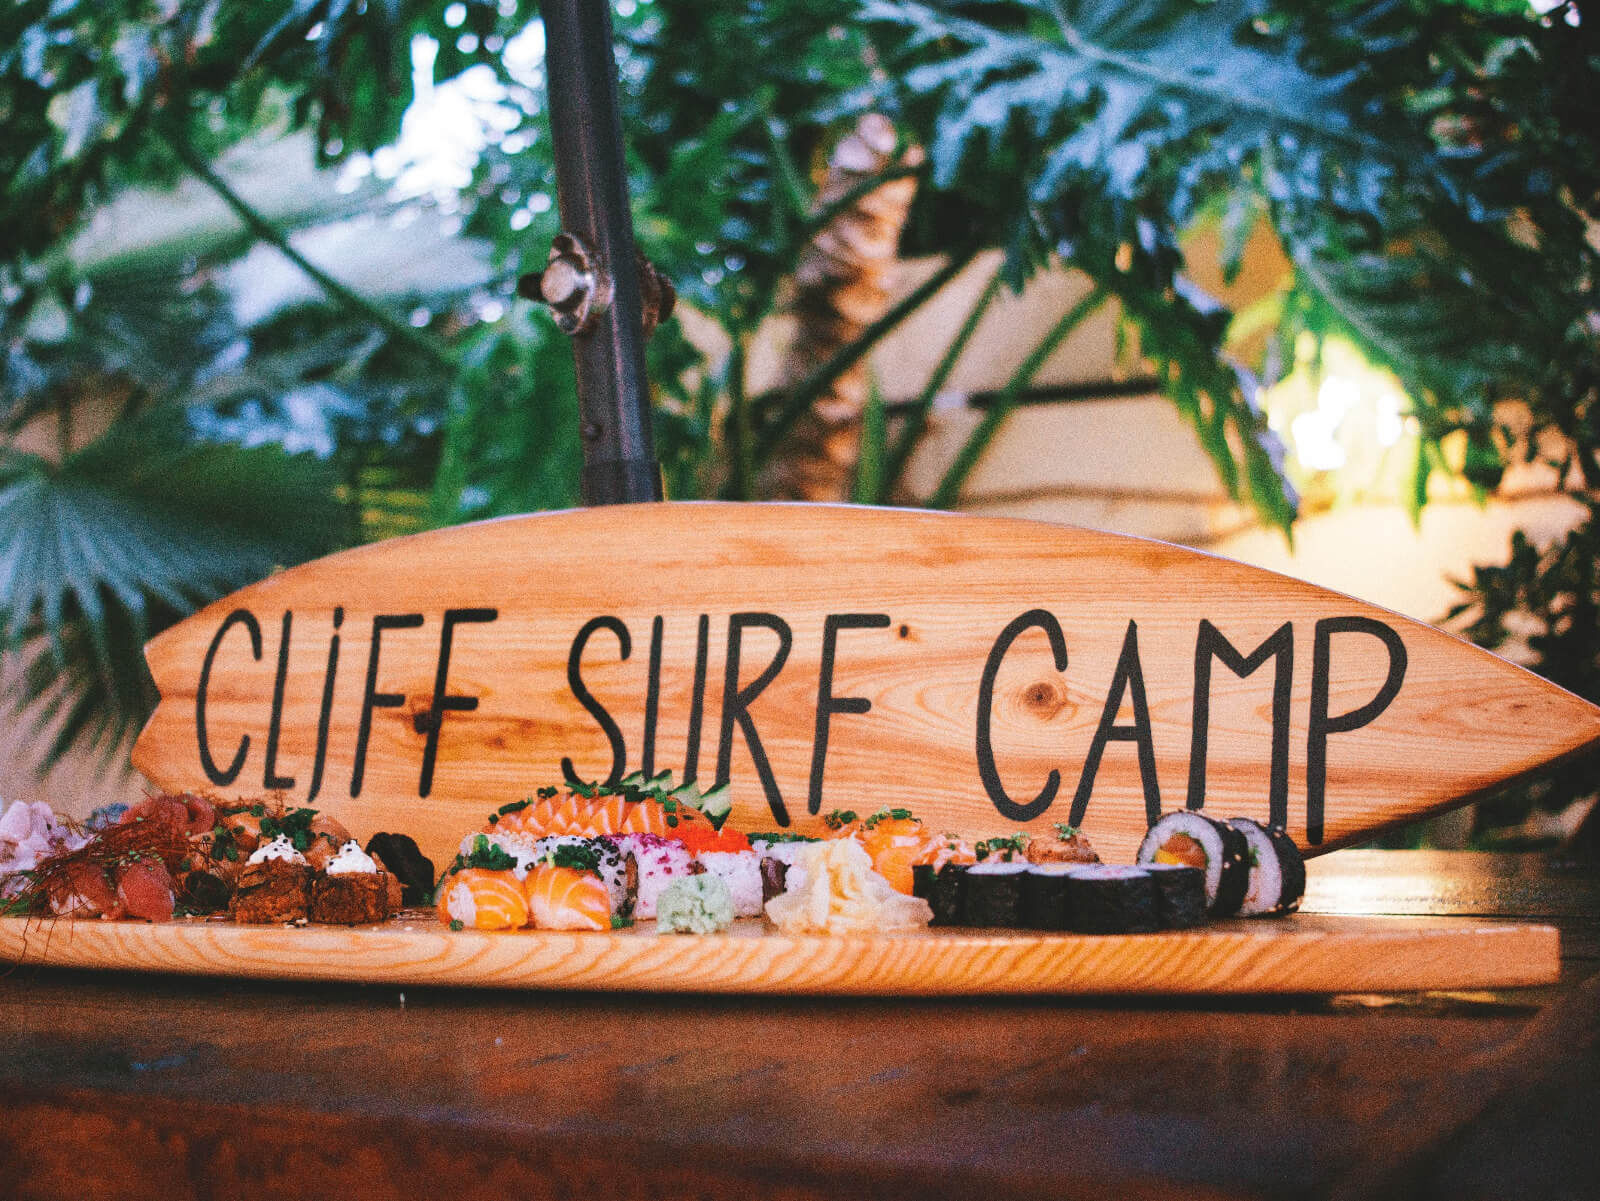 Cliff surf camp sushi plate